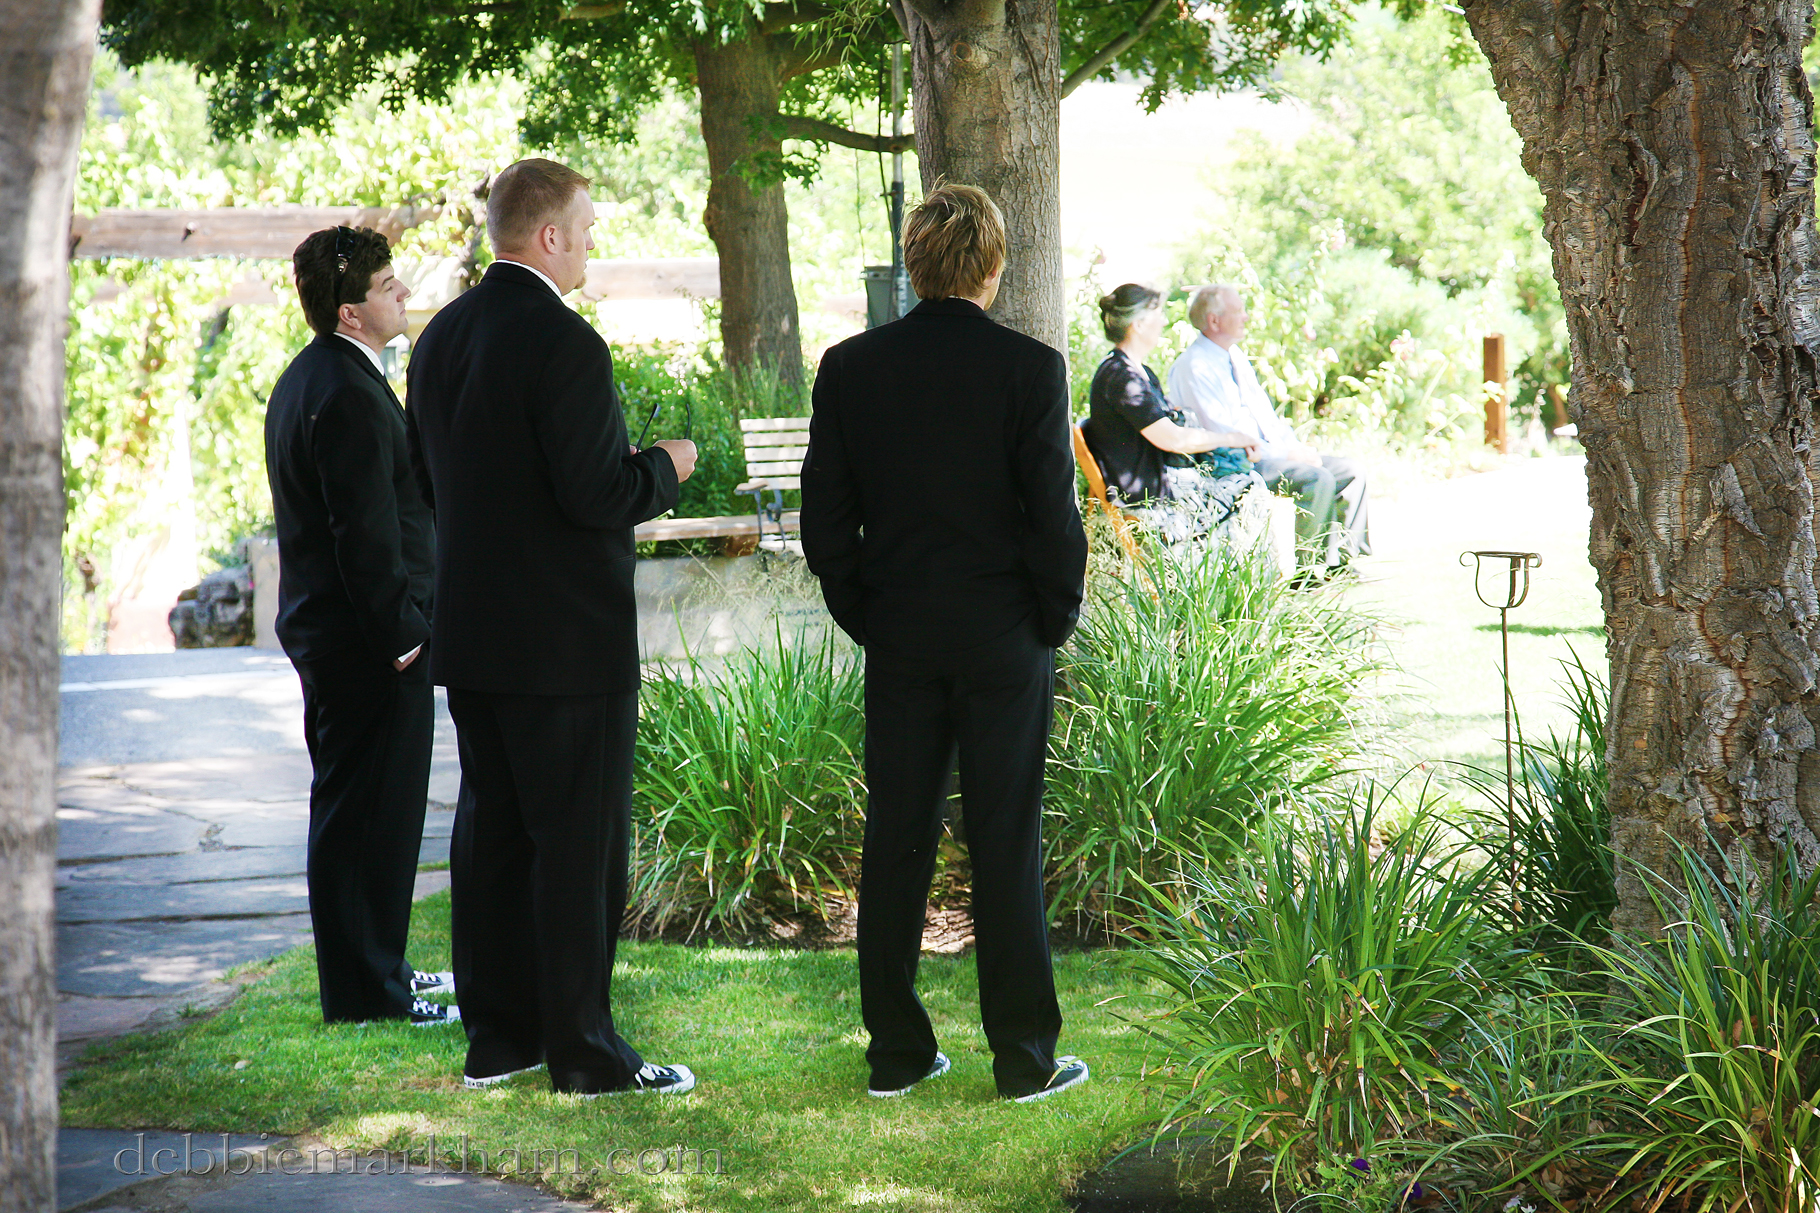 Cambria Photographer Debbie Markham-Professional Wedding Photos at Castoro Winery - Vineyards Outdoor-groomsmen waiting